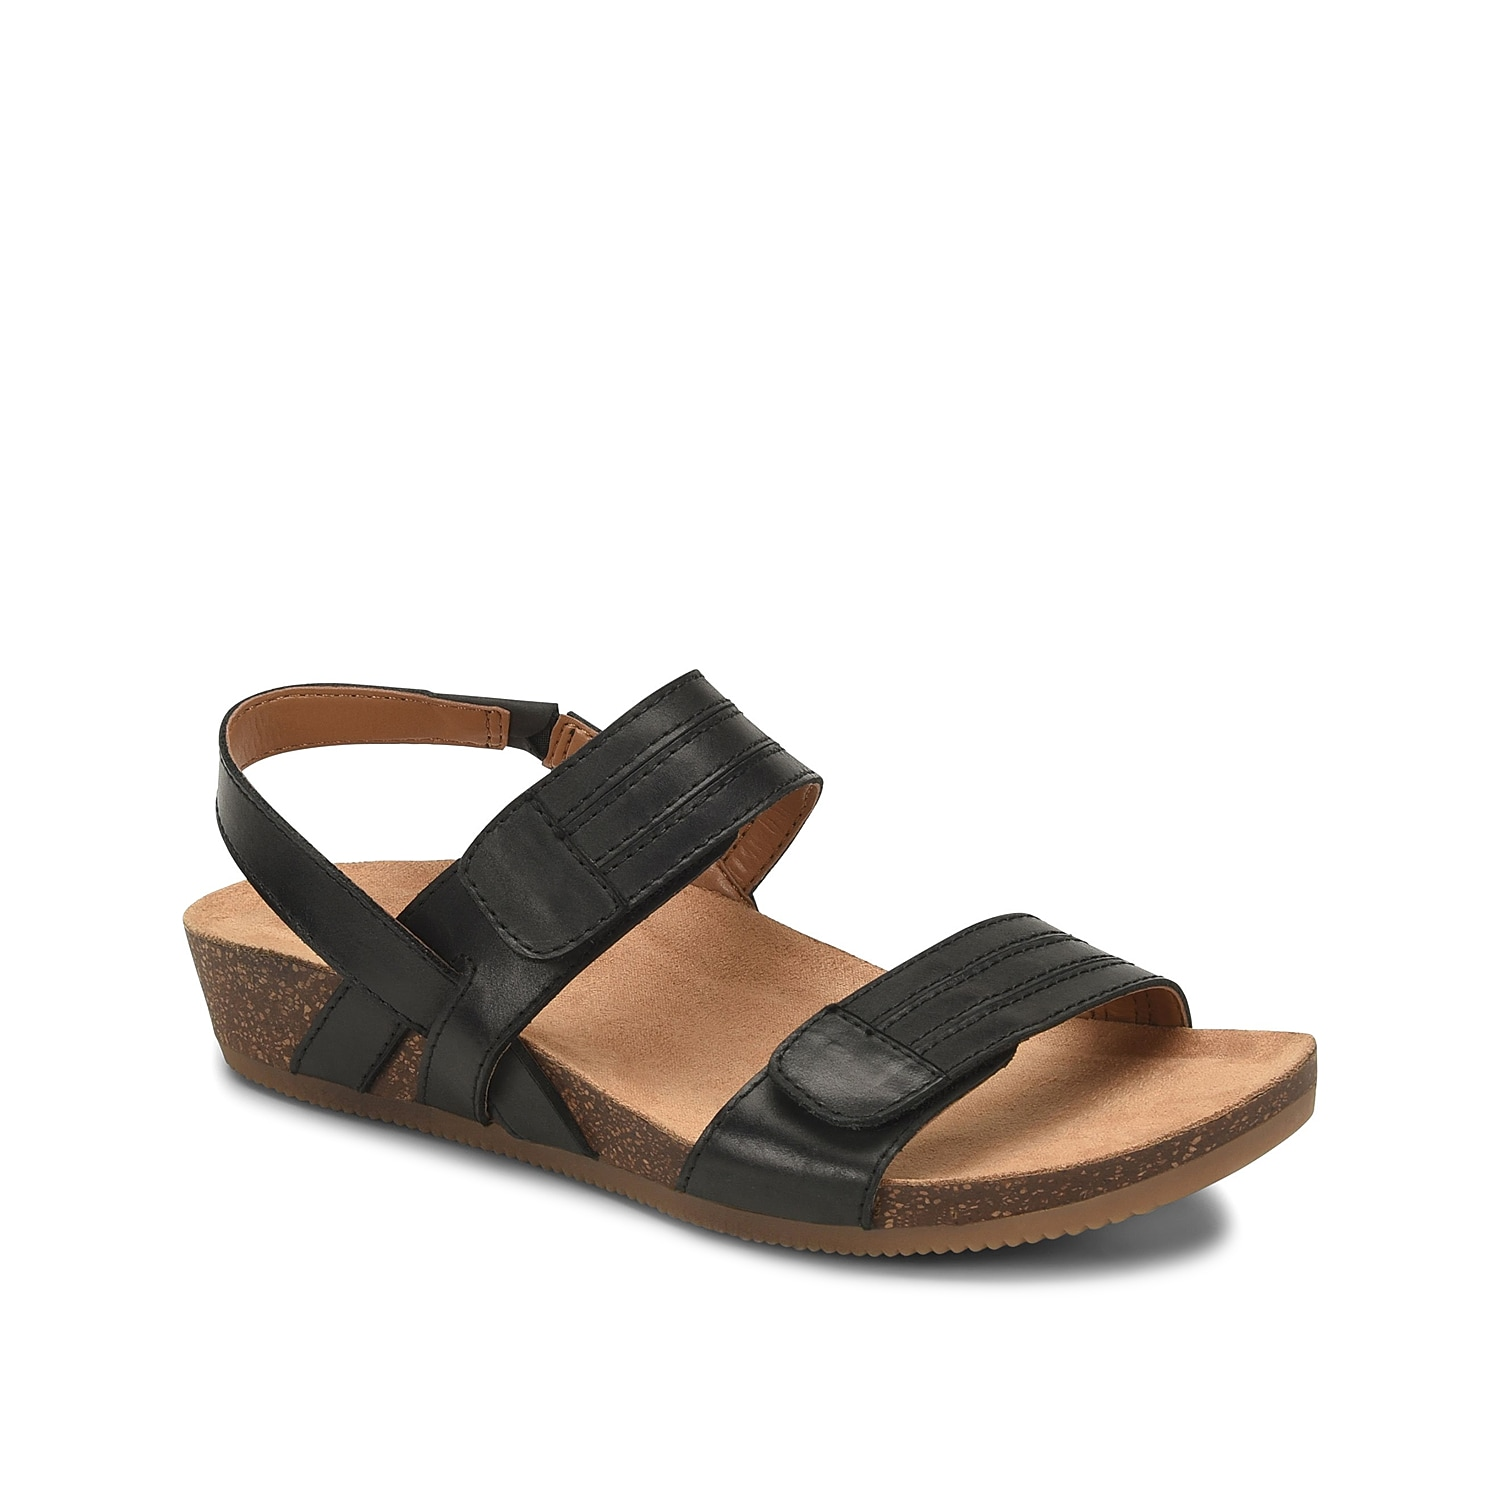 Upgrade your wardrobe with the Gevira wedge sandal from Comfortiva. This leather pair features secured hook and loop straps and a cushioned footbed for daylong wear!